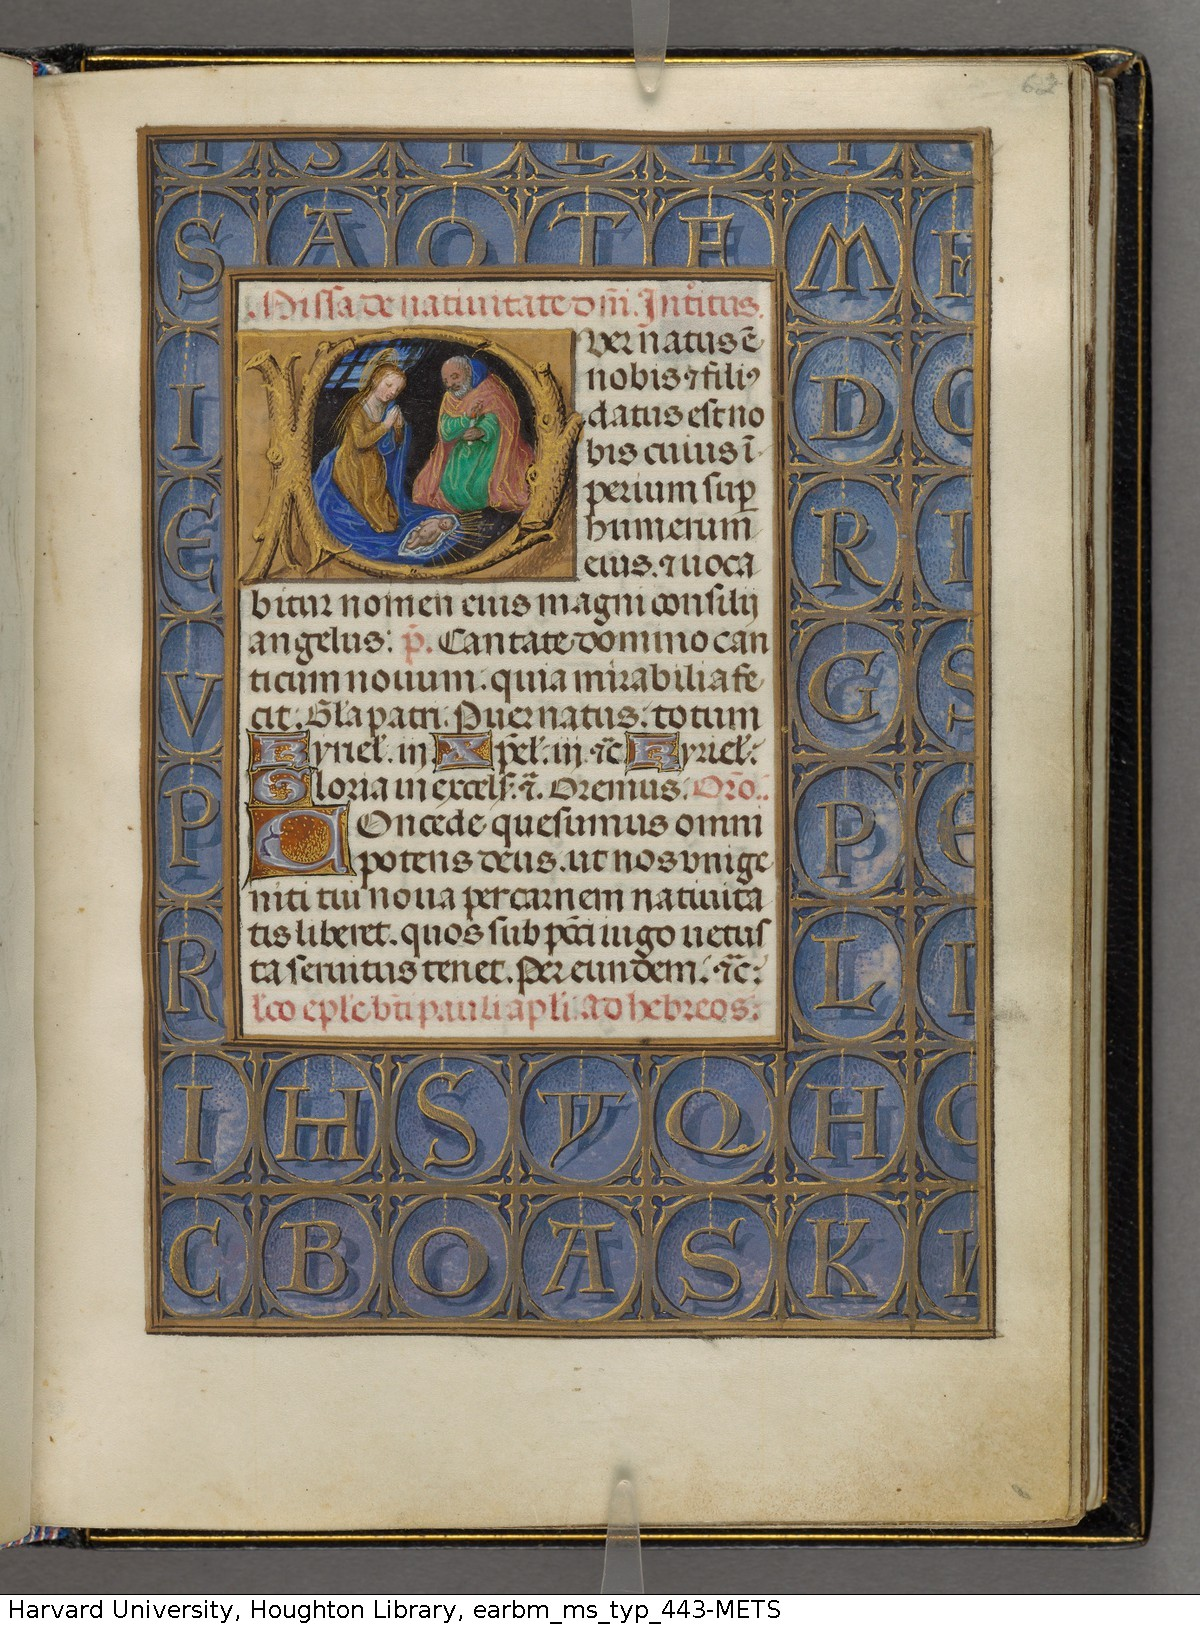 1480 ca Emerson-White Hours use of Rome Harvard University, Houghton Library, MSS Typ 443 fol 62